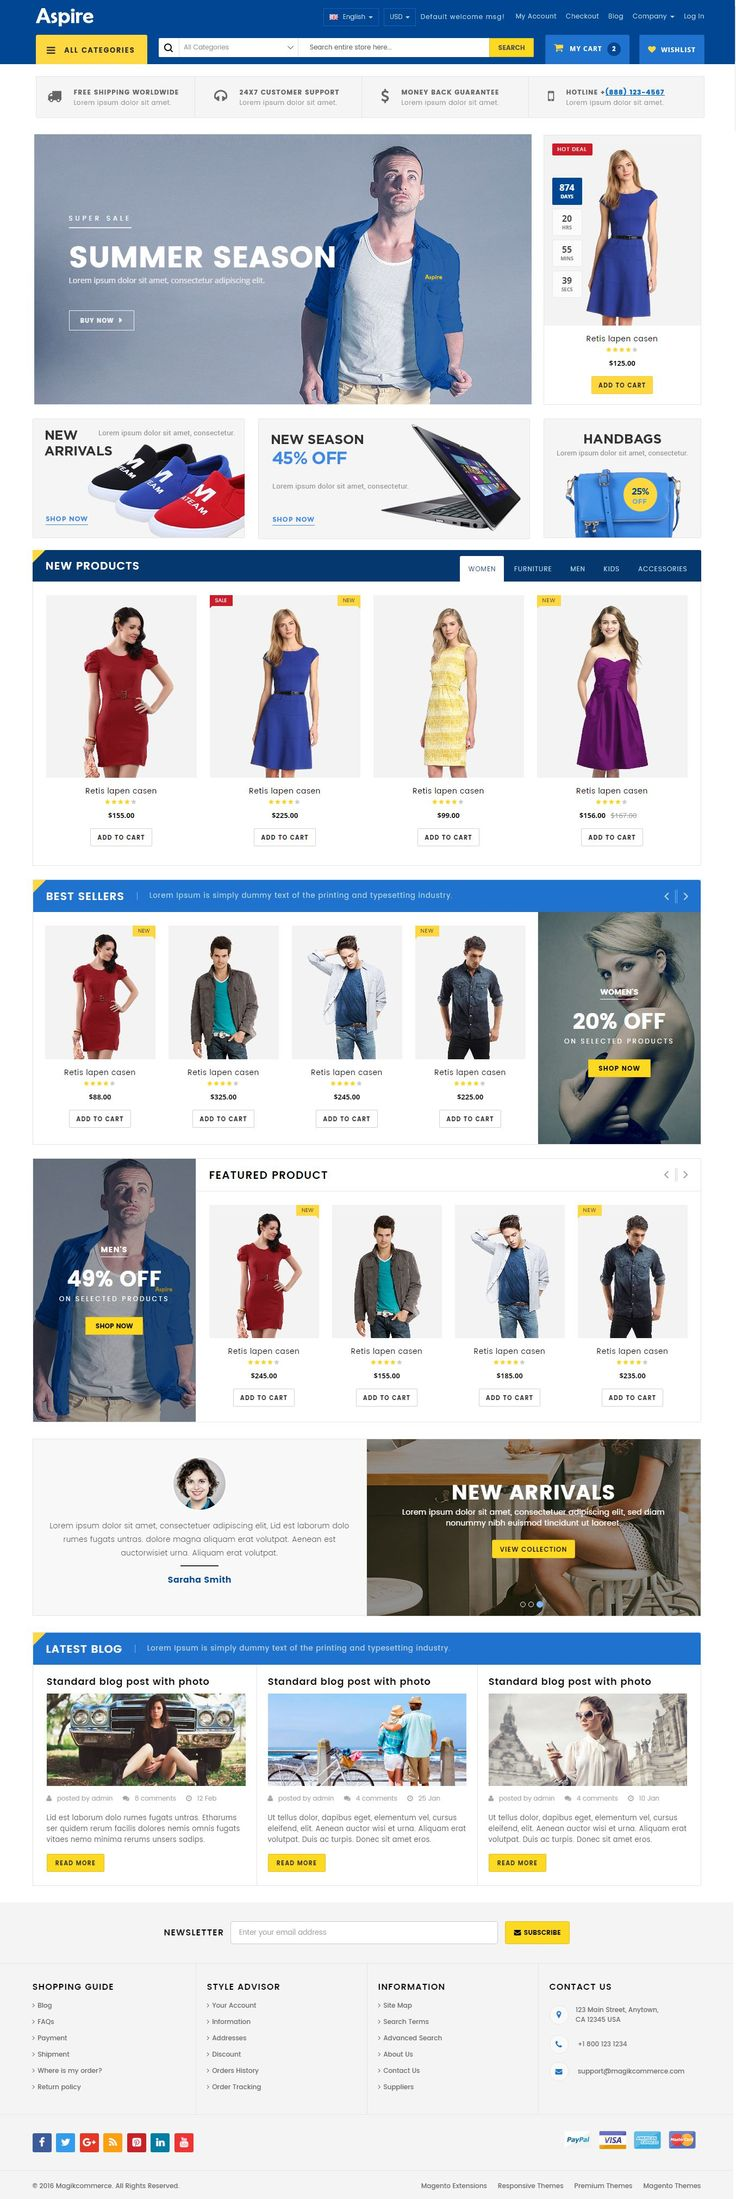 Aspire is a professional e-commerce website template coded with HTML5, CSS3 and Bootstrap 3.3.6 latest version. This template is suitable for fashion, shopping, clothing, wholesale dresses and similar websites. #bootstrapecommerce #HTMLecommerce #ecommercetheme